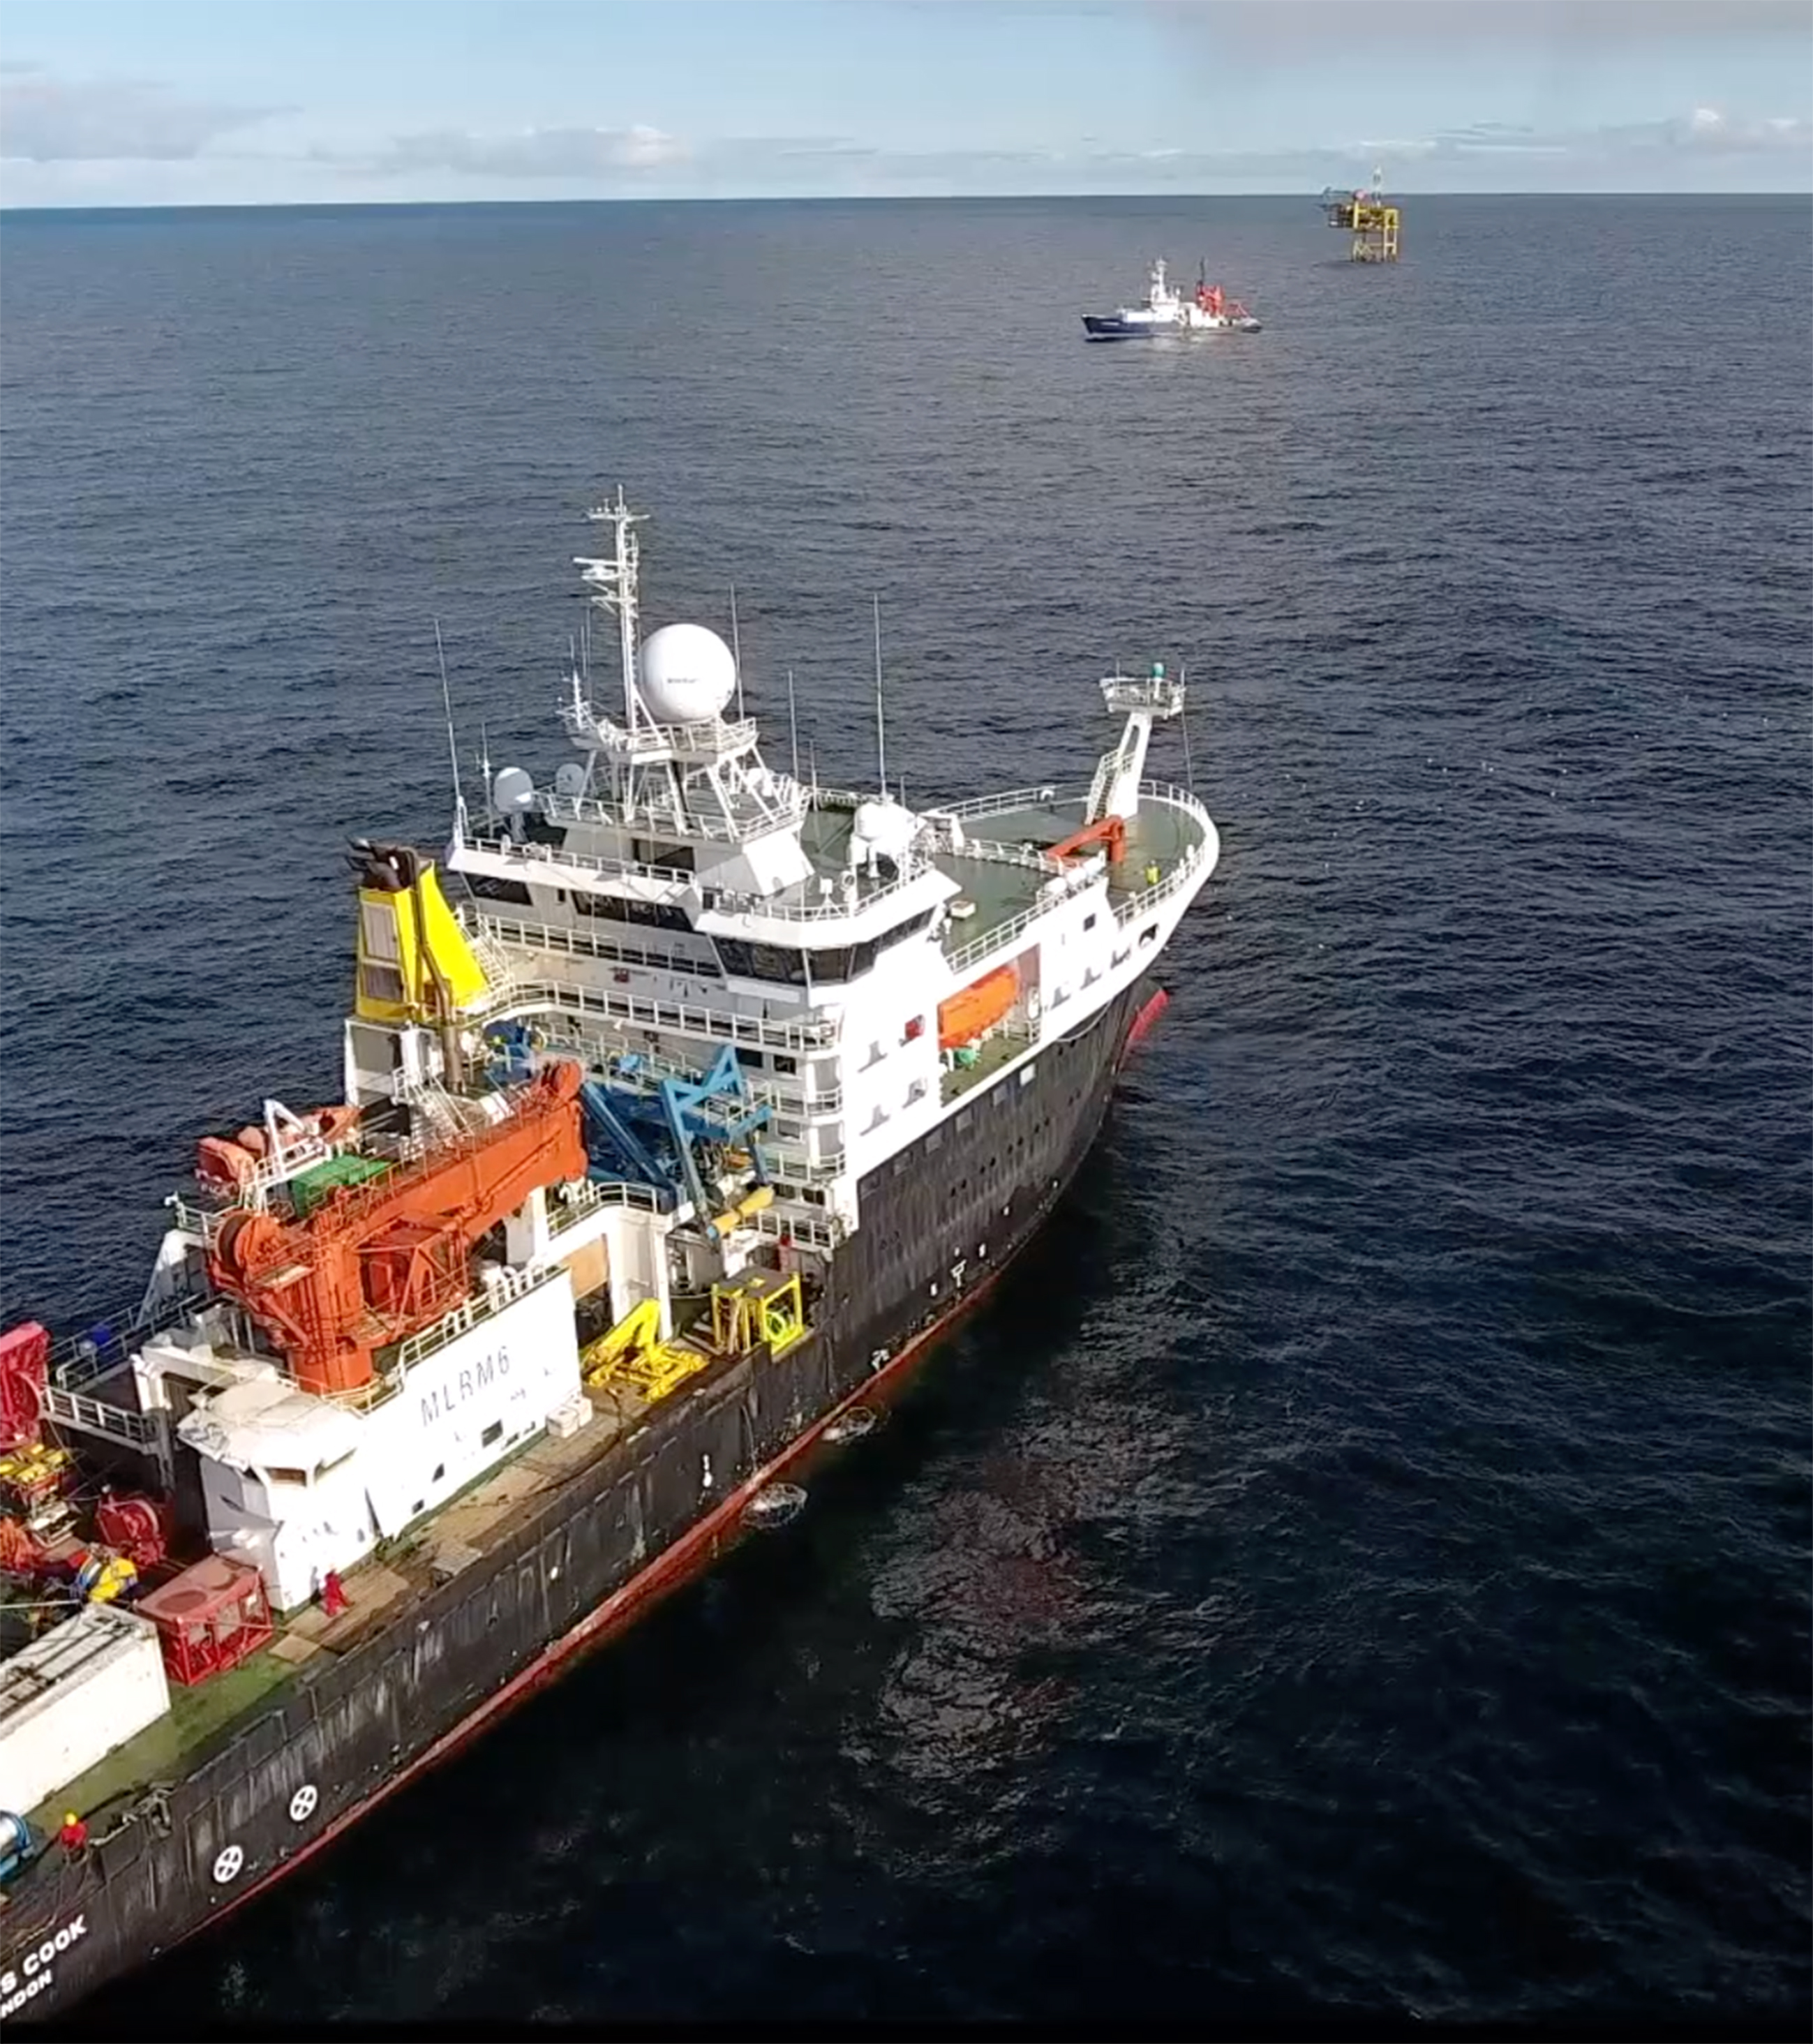 The RSS James Cook, RV Poseidon, and the Goldeneye platform. Courtesy NOC.